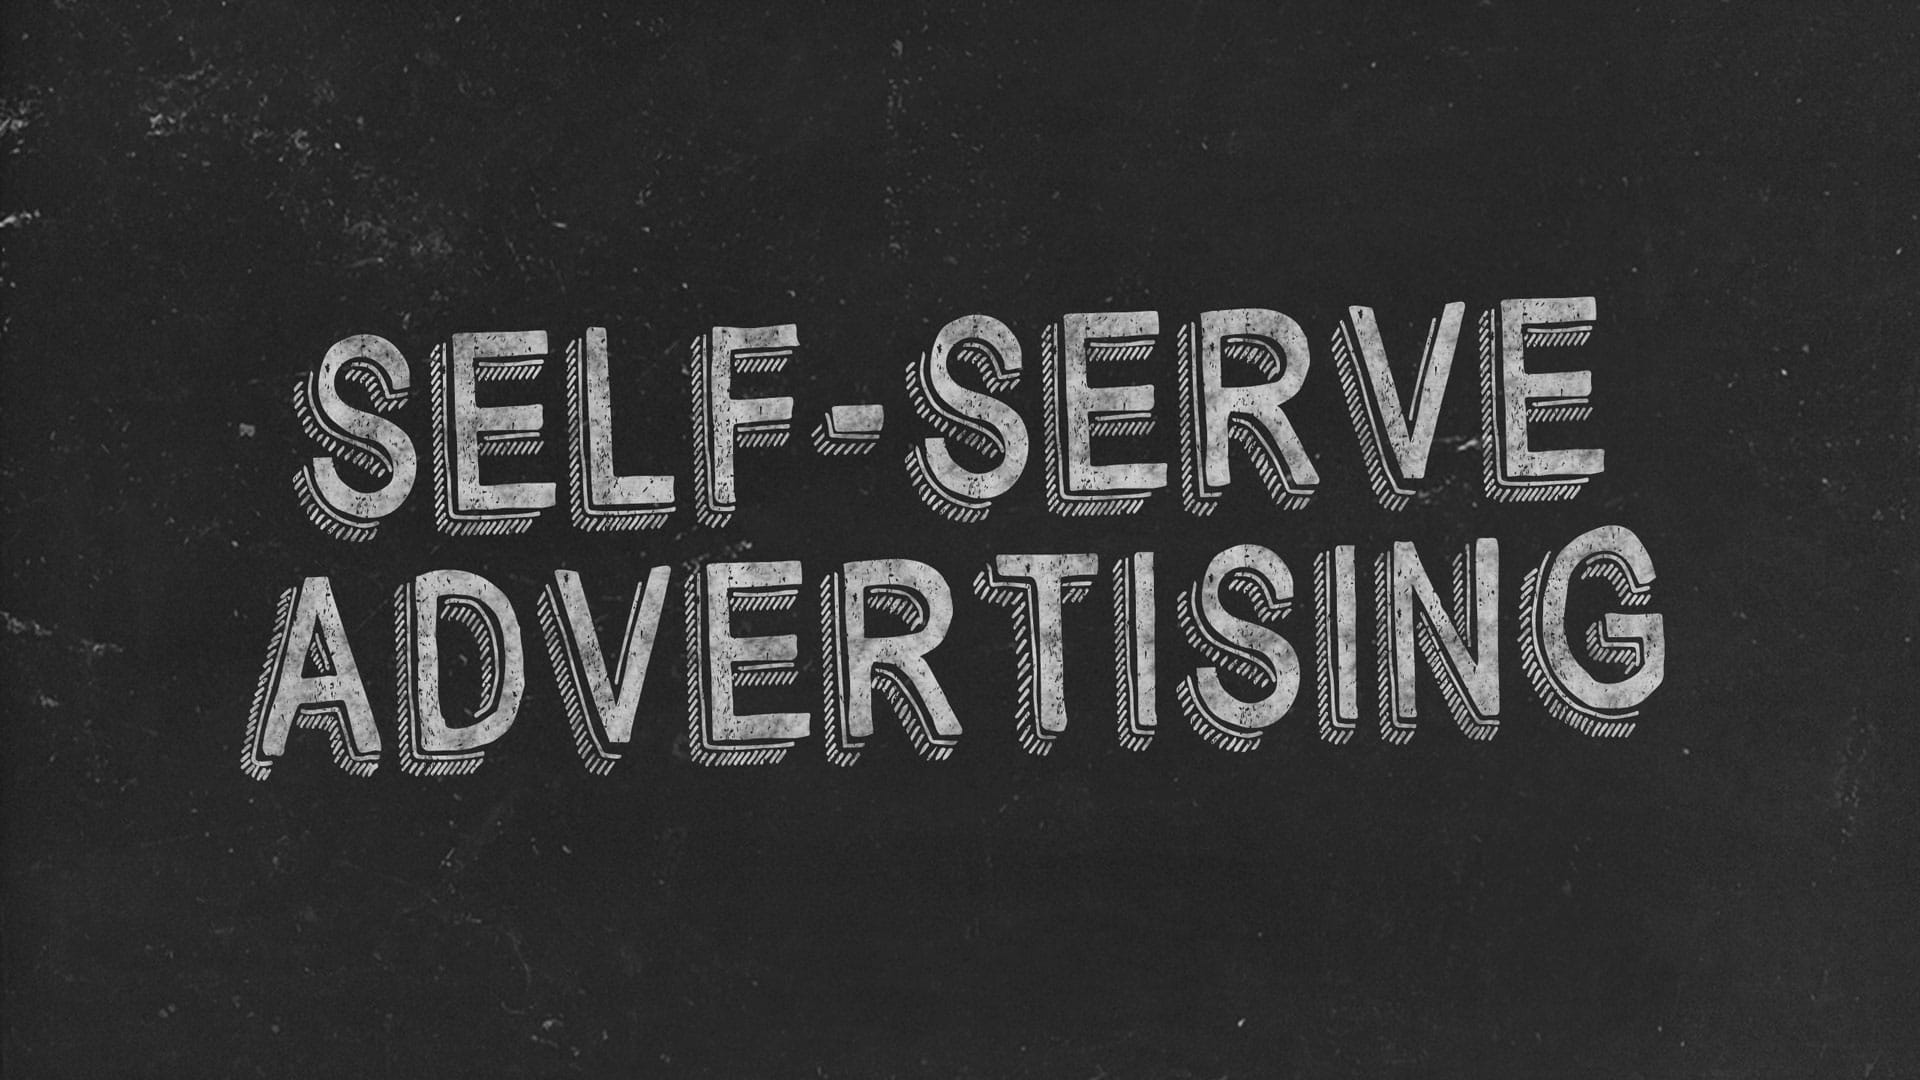 Self-Serve Advertising Black Image